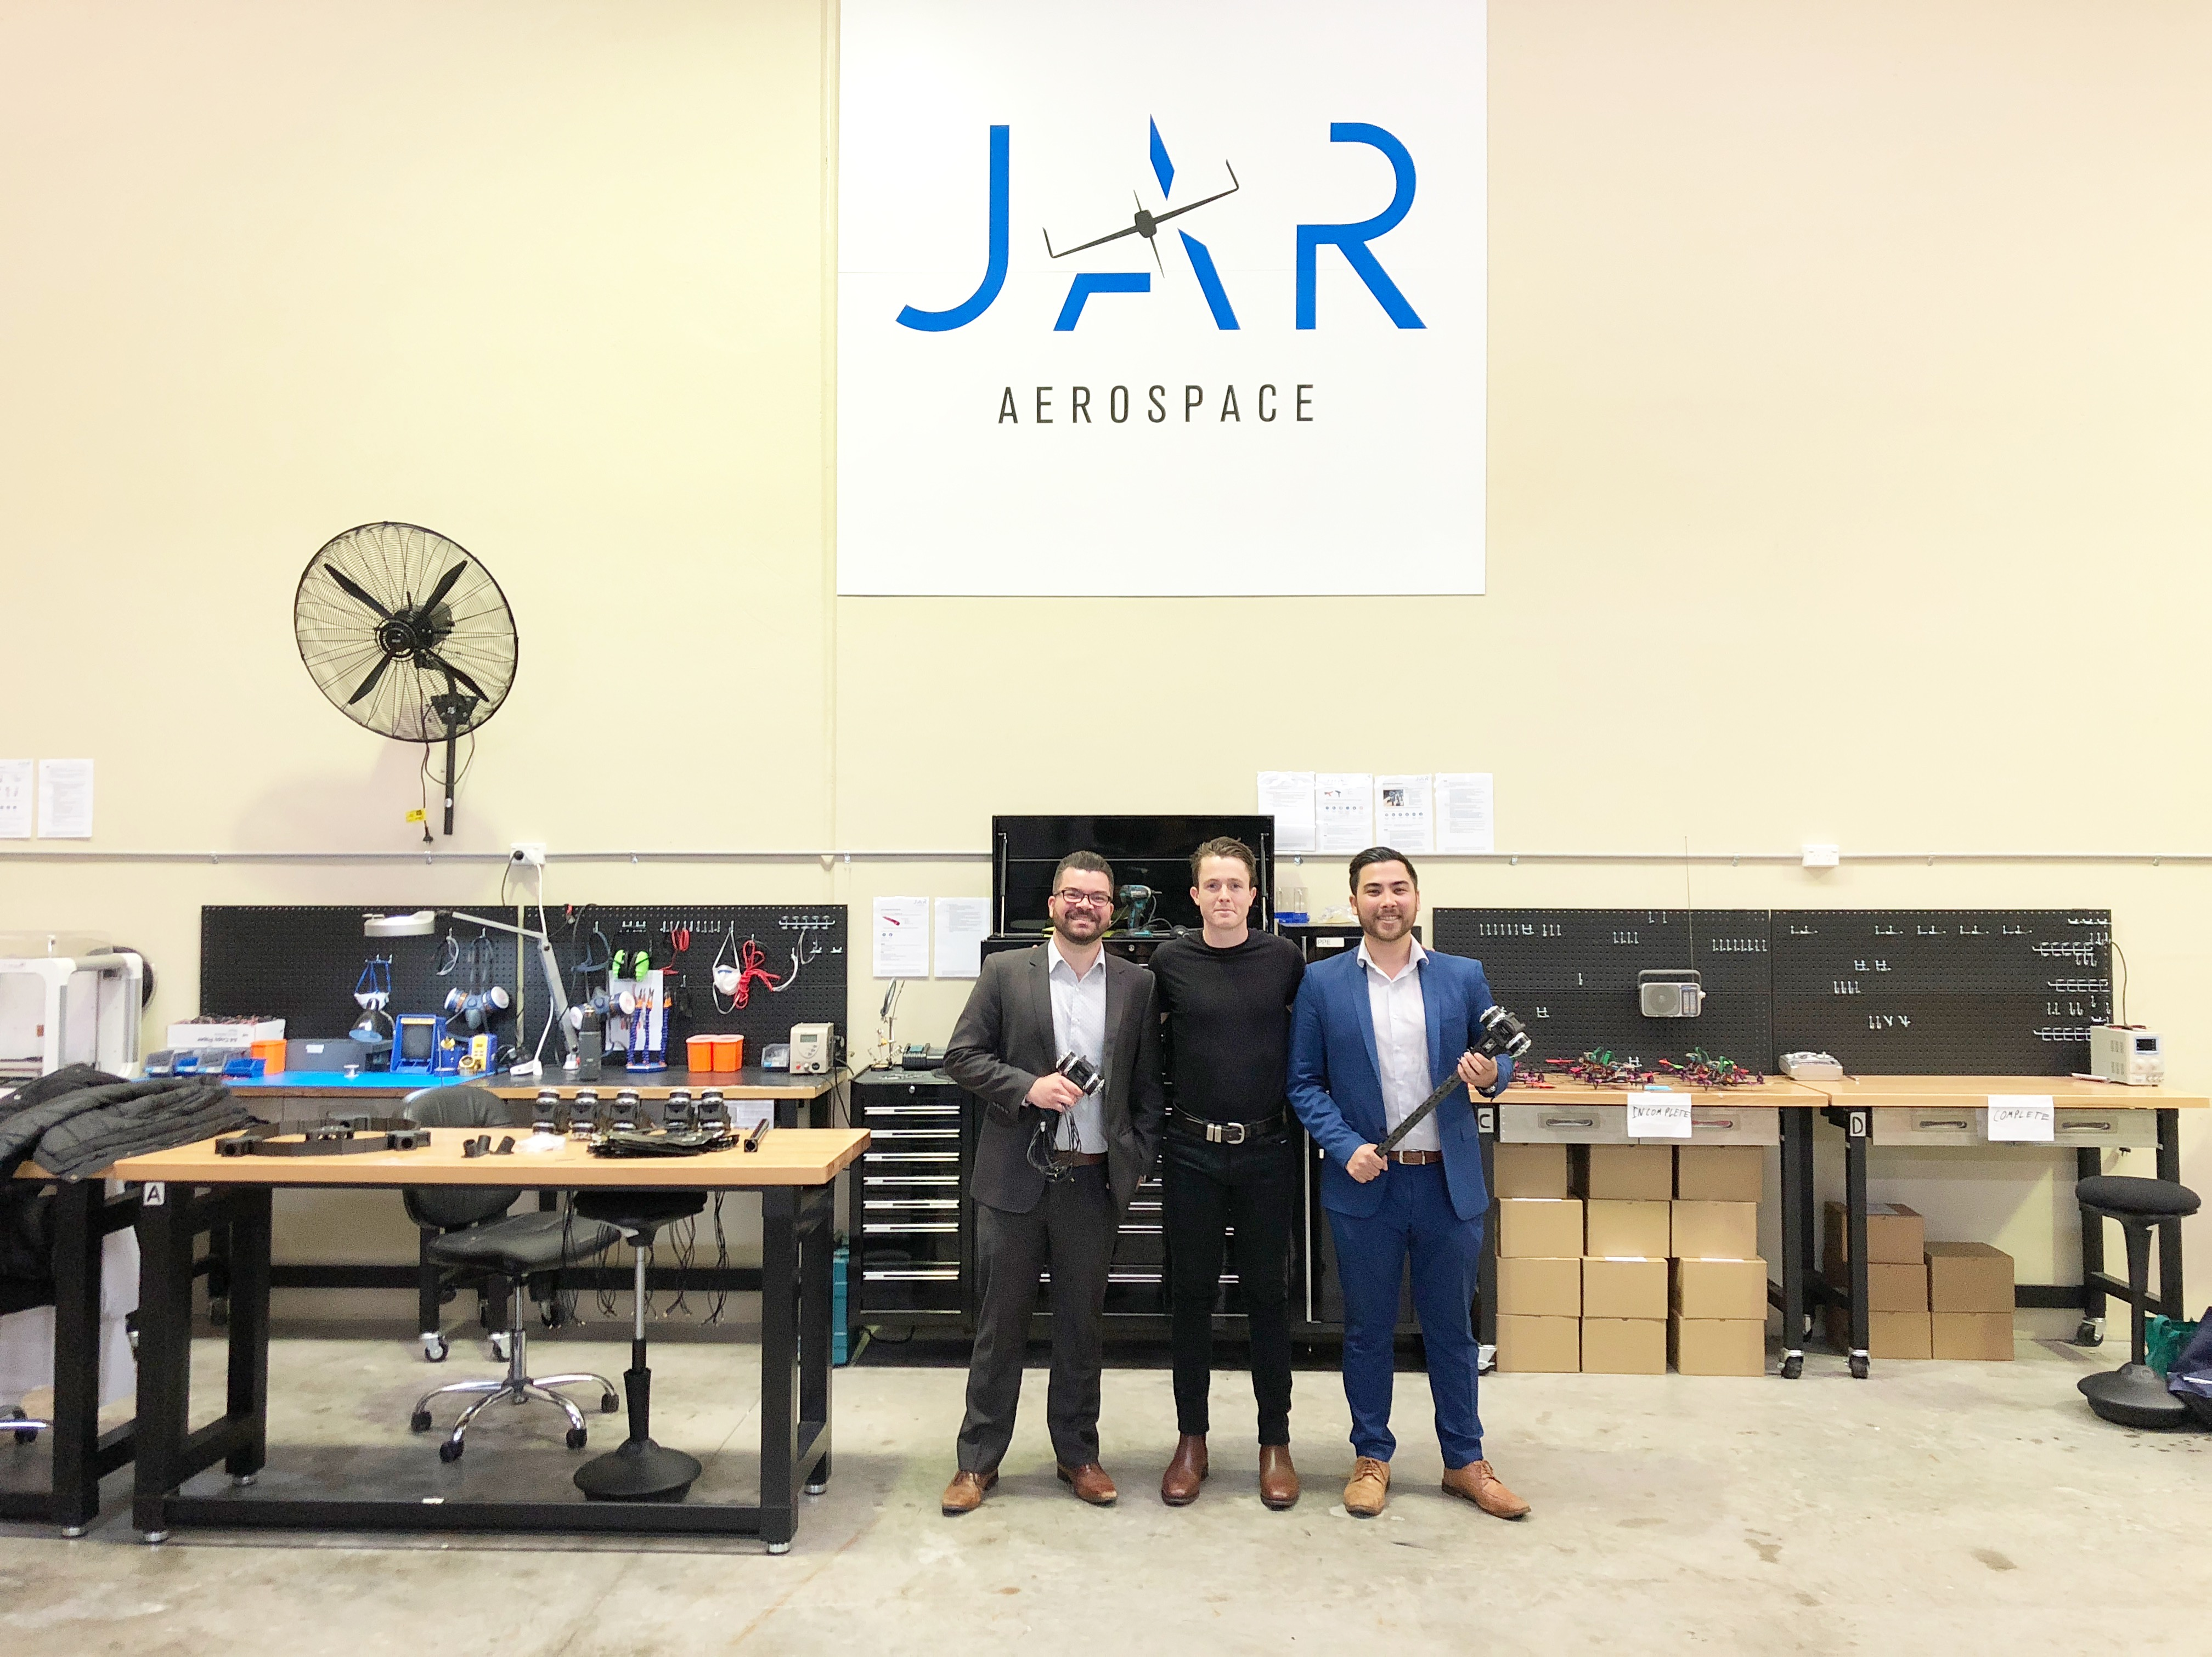 The team at their Caringbah facility in Sydney.